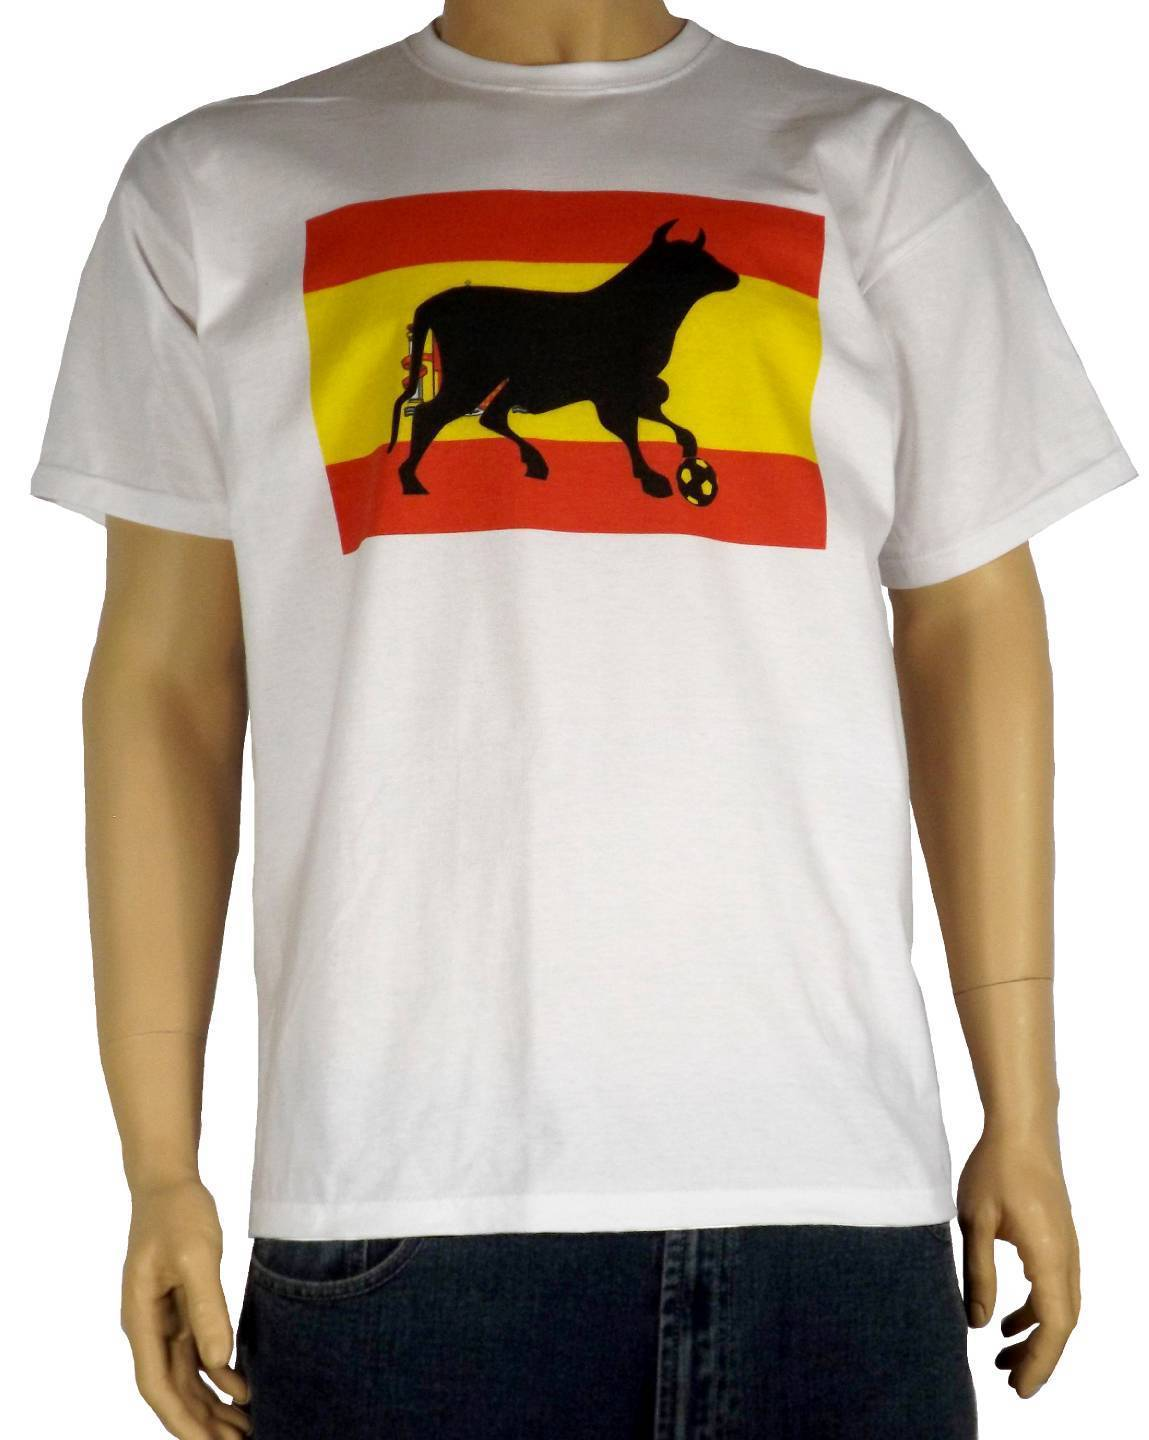 SPANISH FOOTBALLER BULL T-SHIRT - Spain Espana Futbol - Sizes S to 3XL Cute Tatoo Lover ...